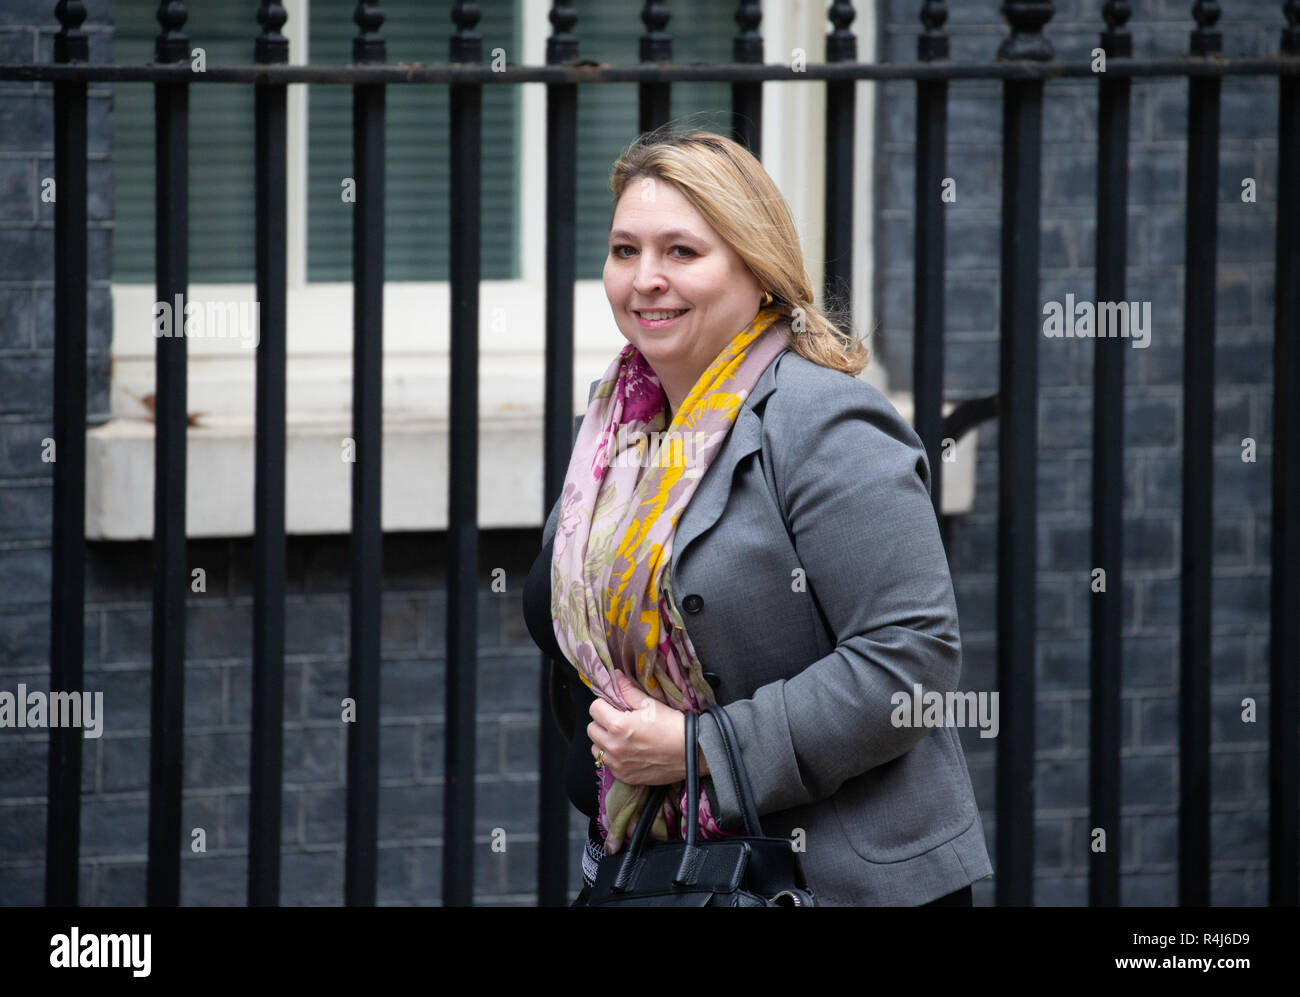 Karen Bradley, Secretary of State for Northern Ireland, at Downing Street for a Cabinet meeting - Stock Image